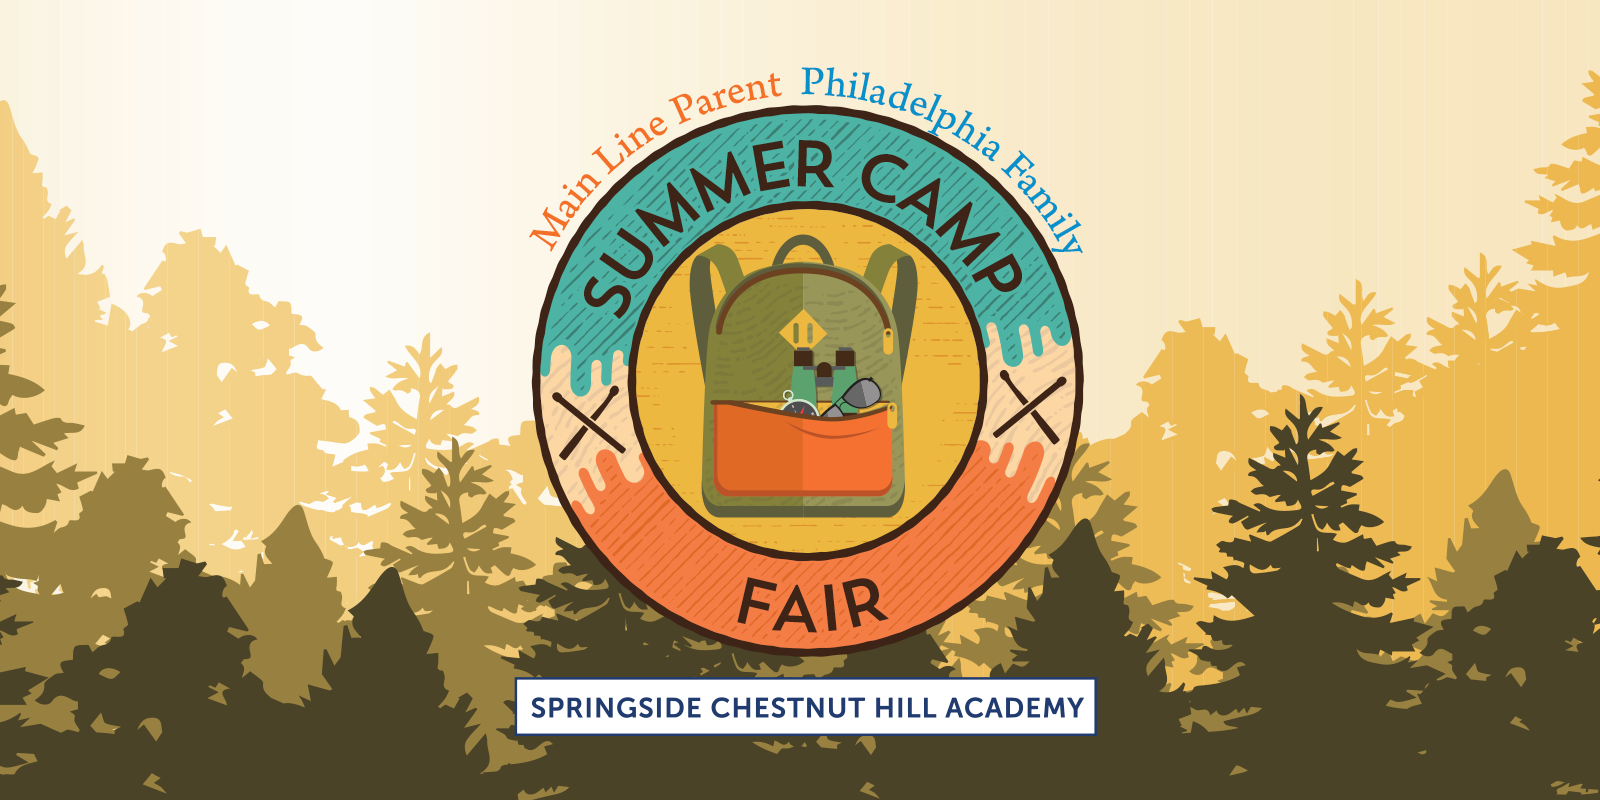 Main Line Parent and Philadelphia Family Summer Camp Fair at SCH Academy